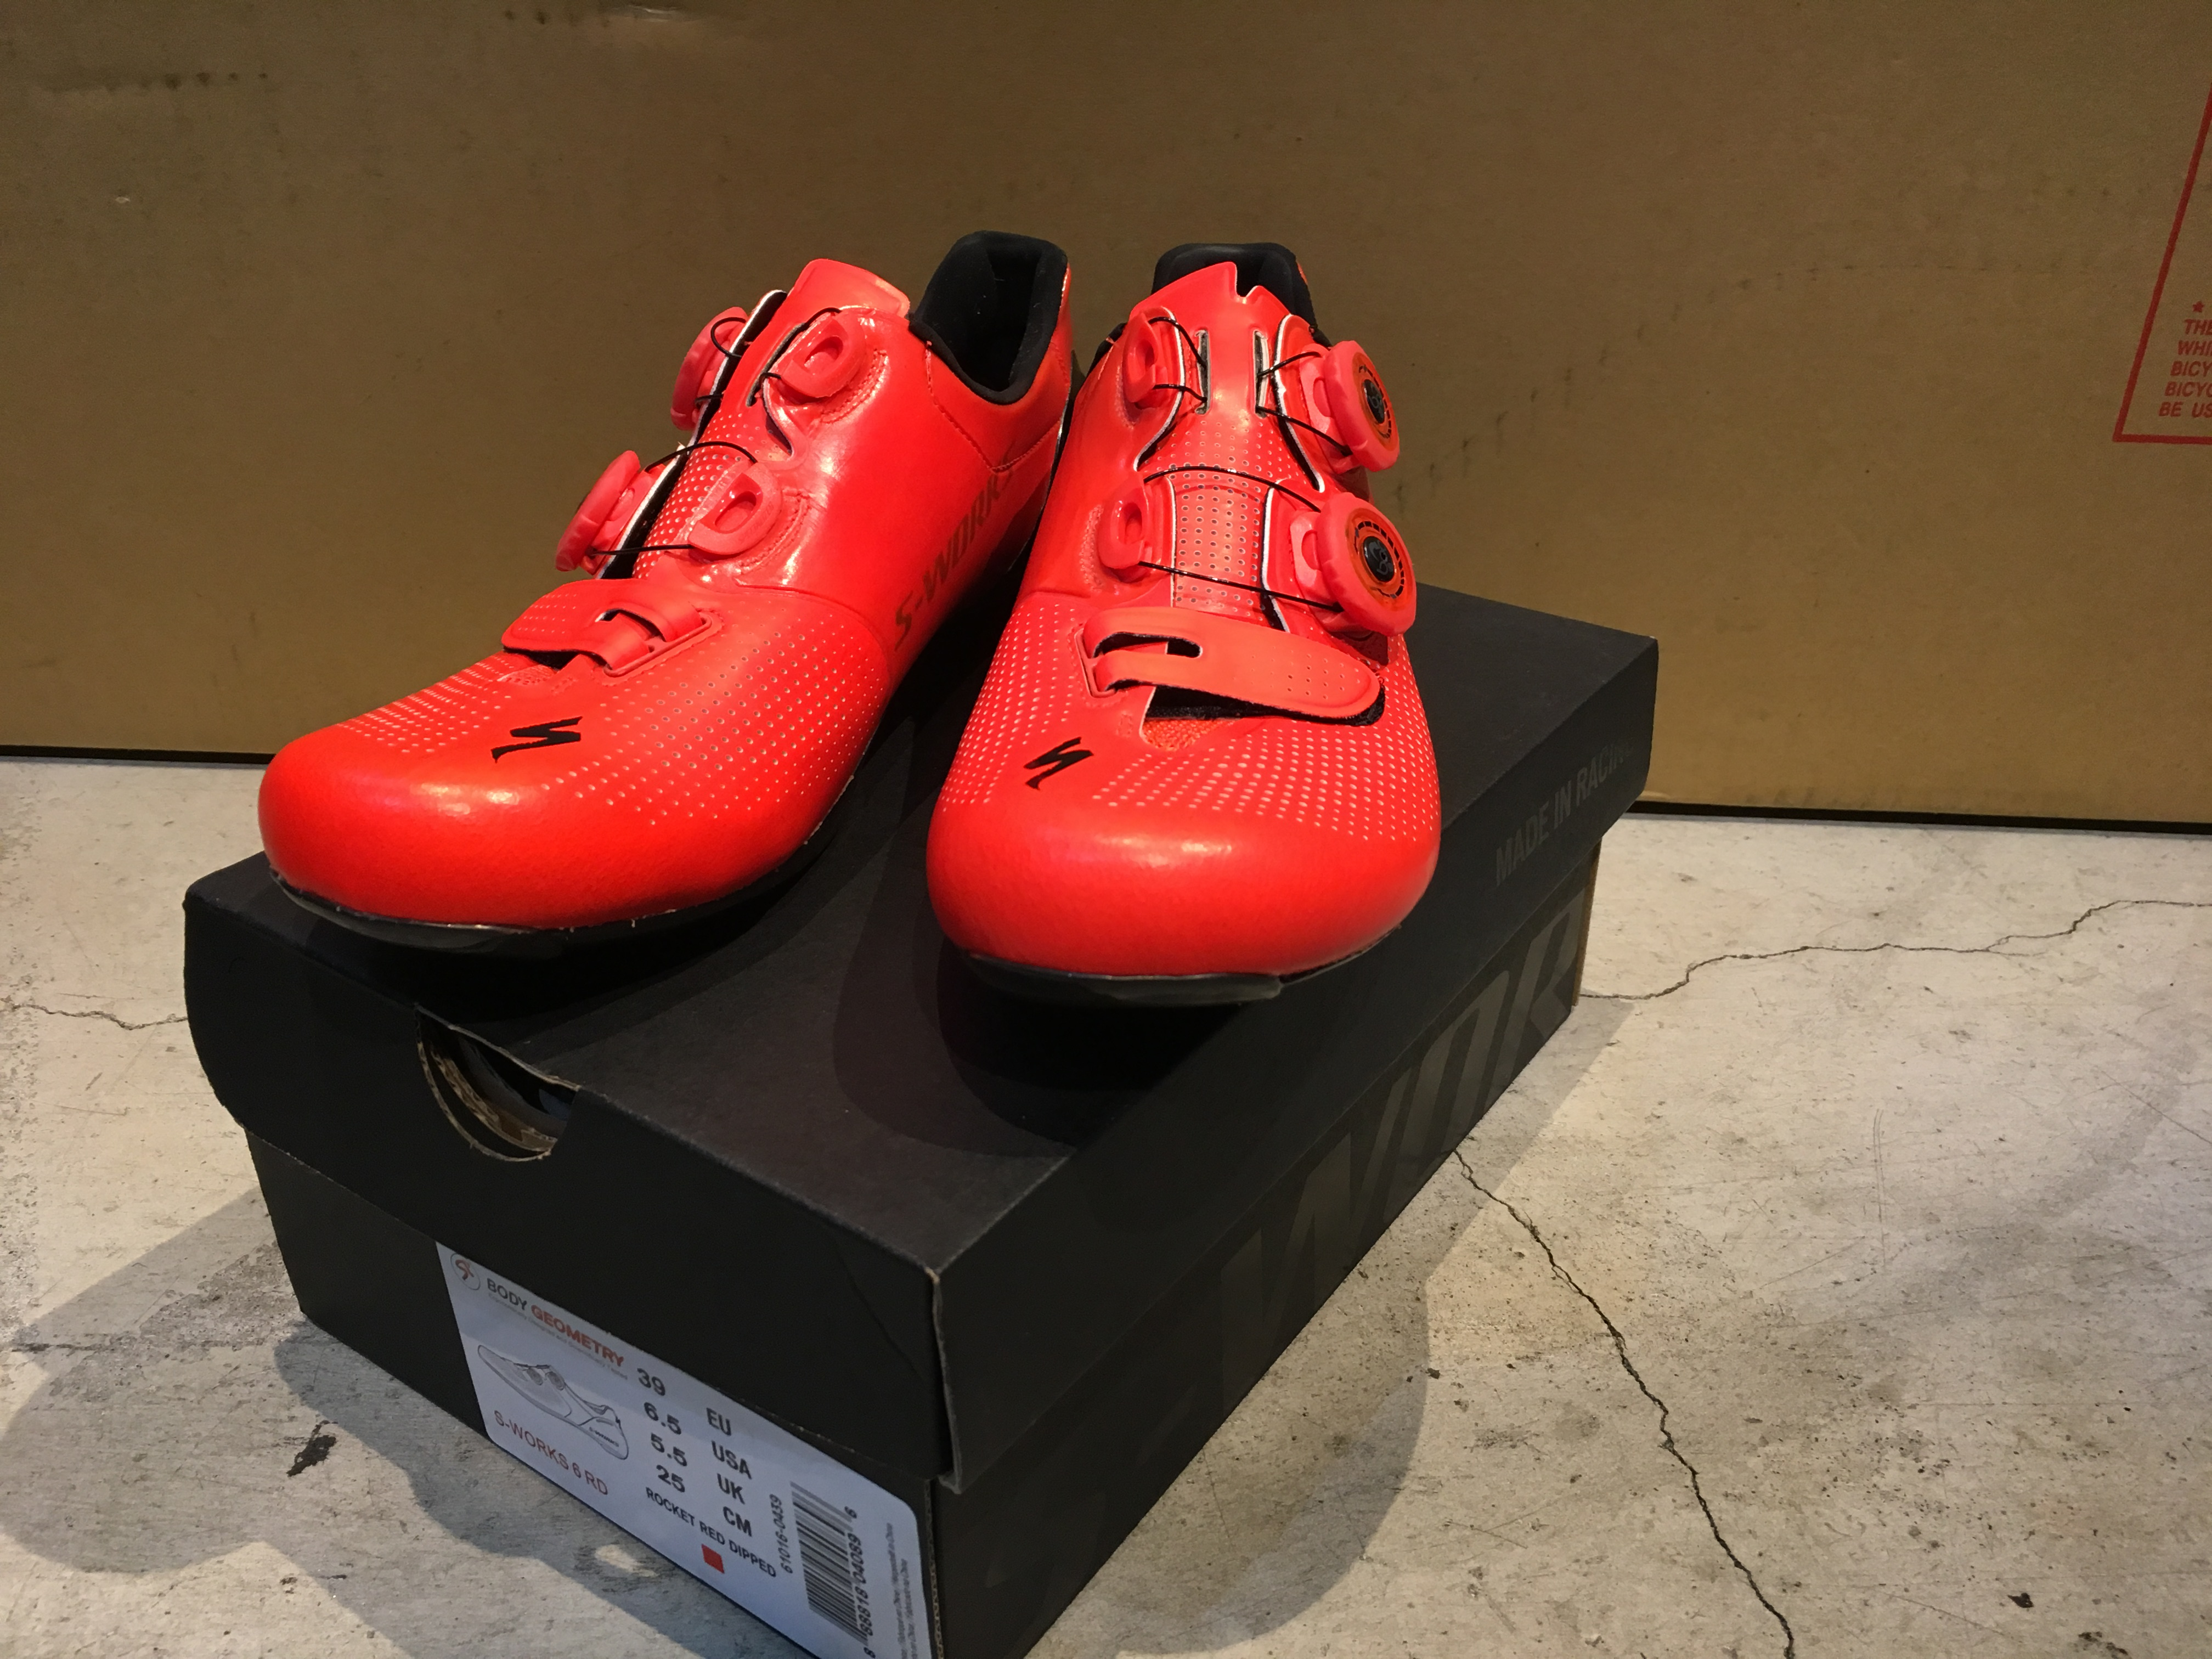 S-WORKS 6 RoadShoes(2016RED)